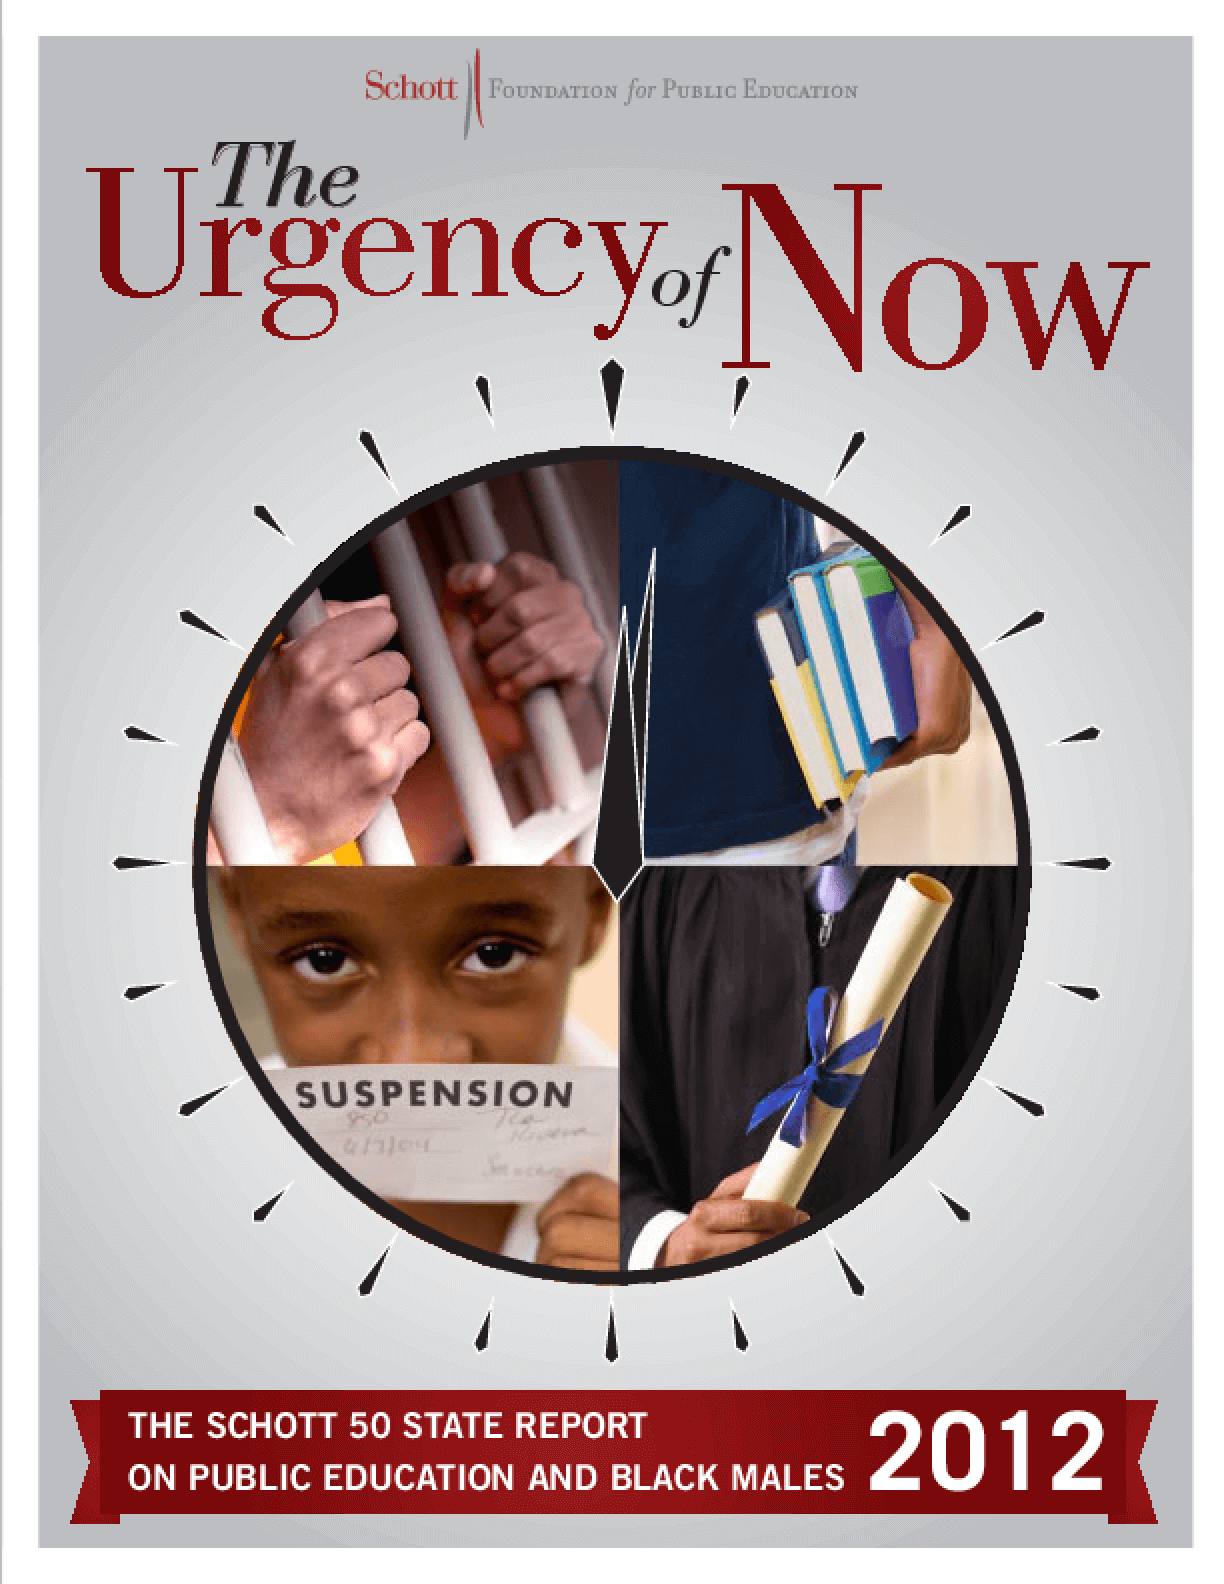 The Urgency of Now: The Schott 50 State Report on Public Education and Black Males, 2012